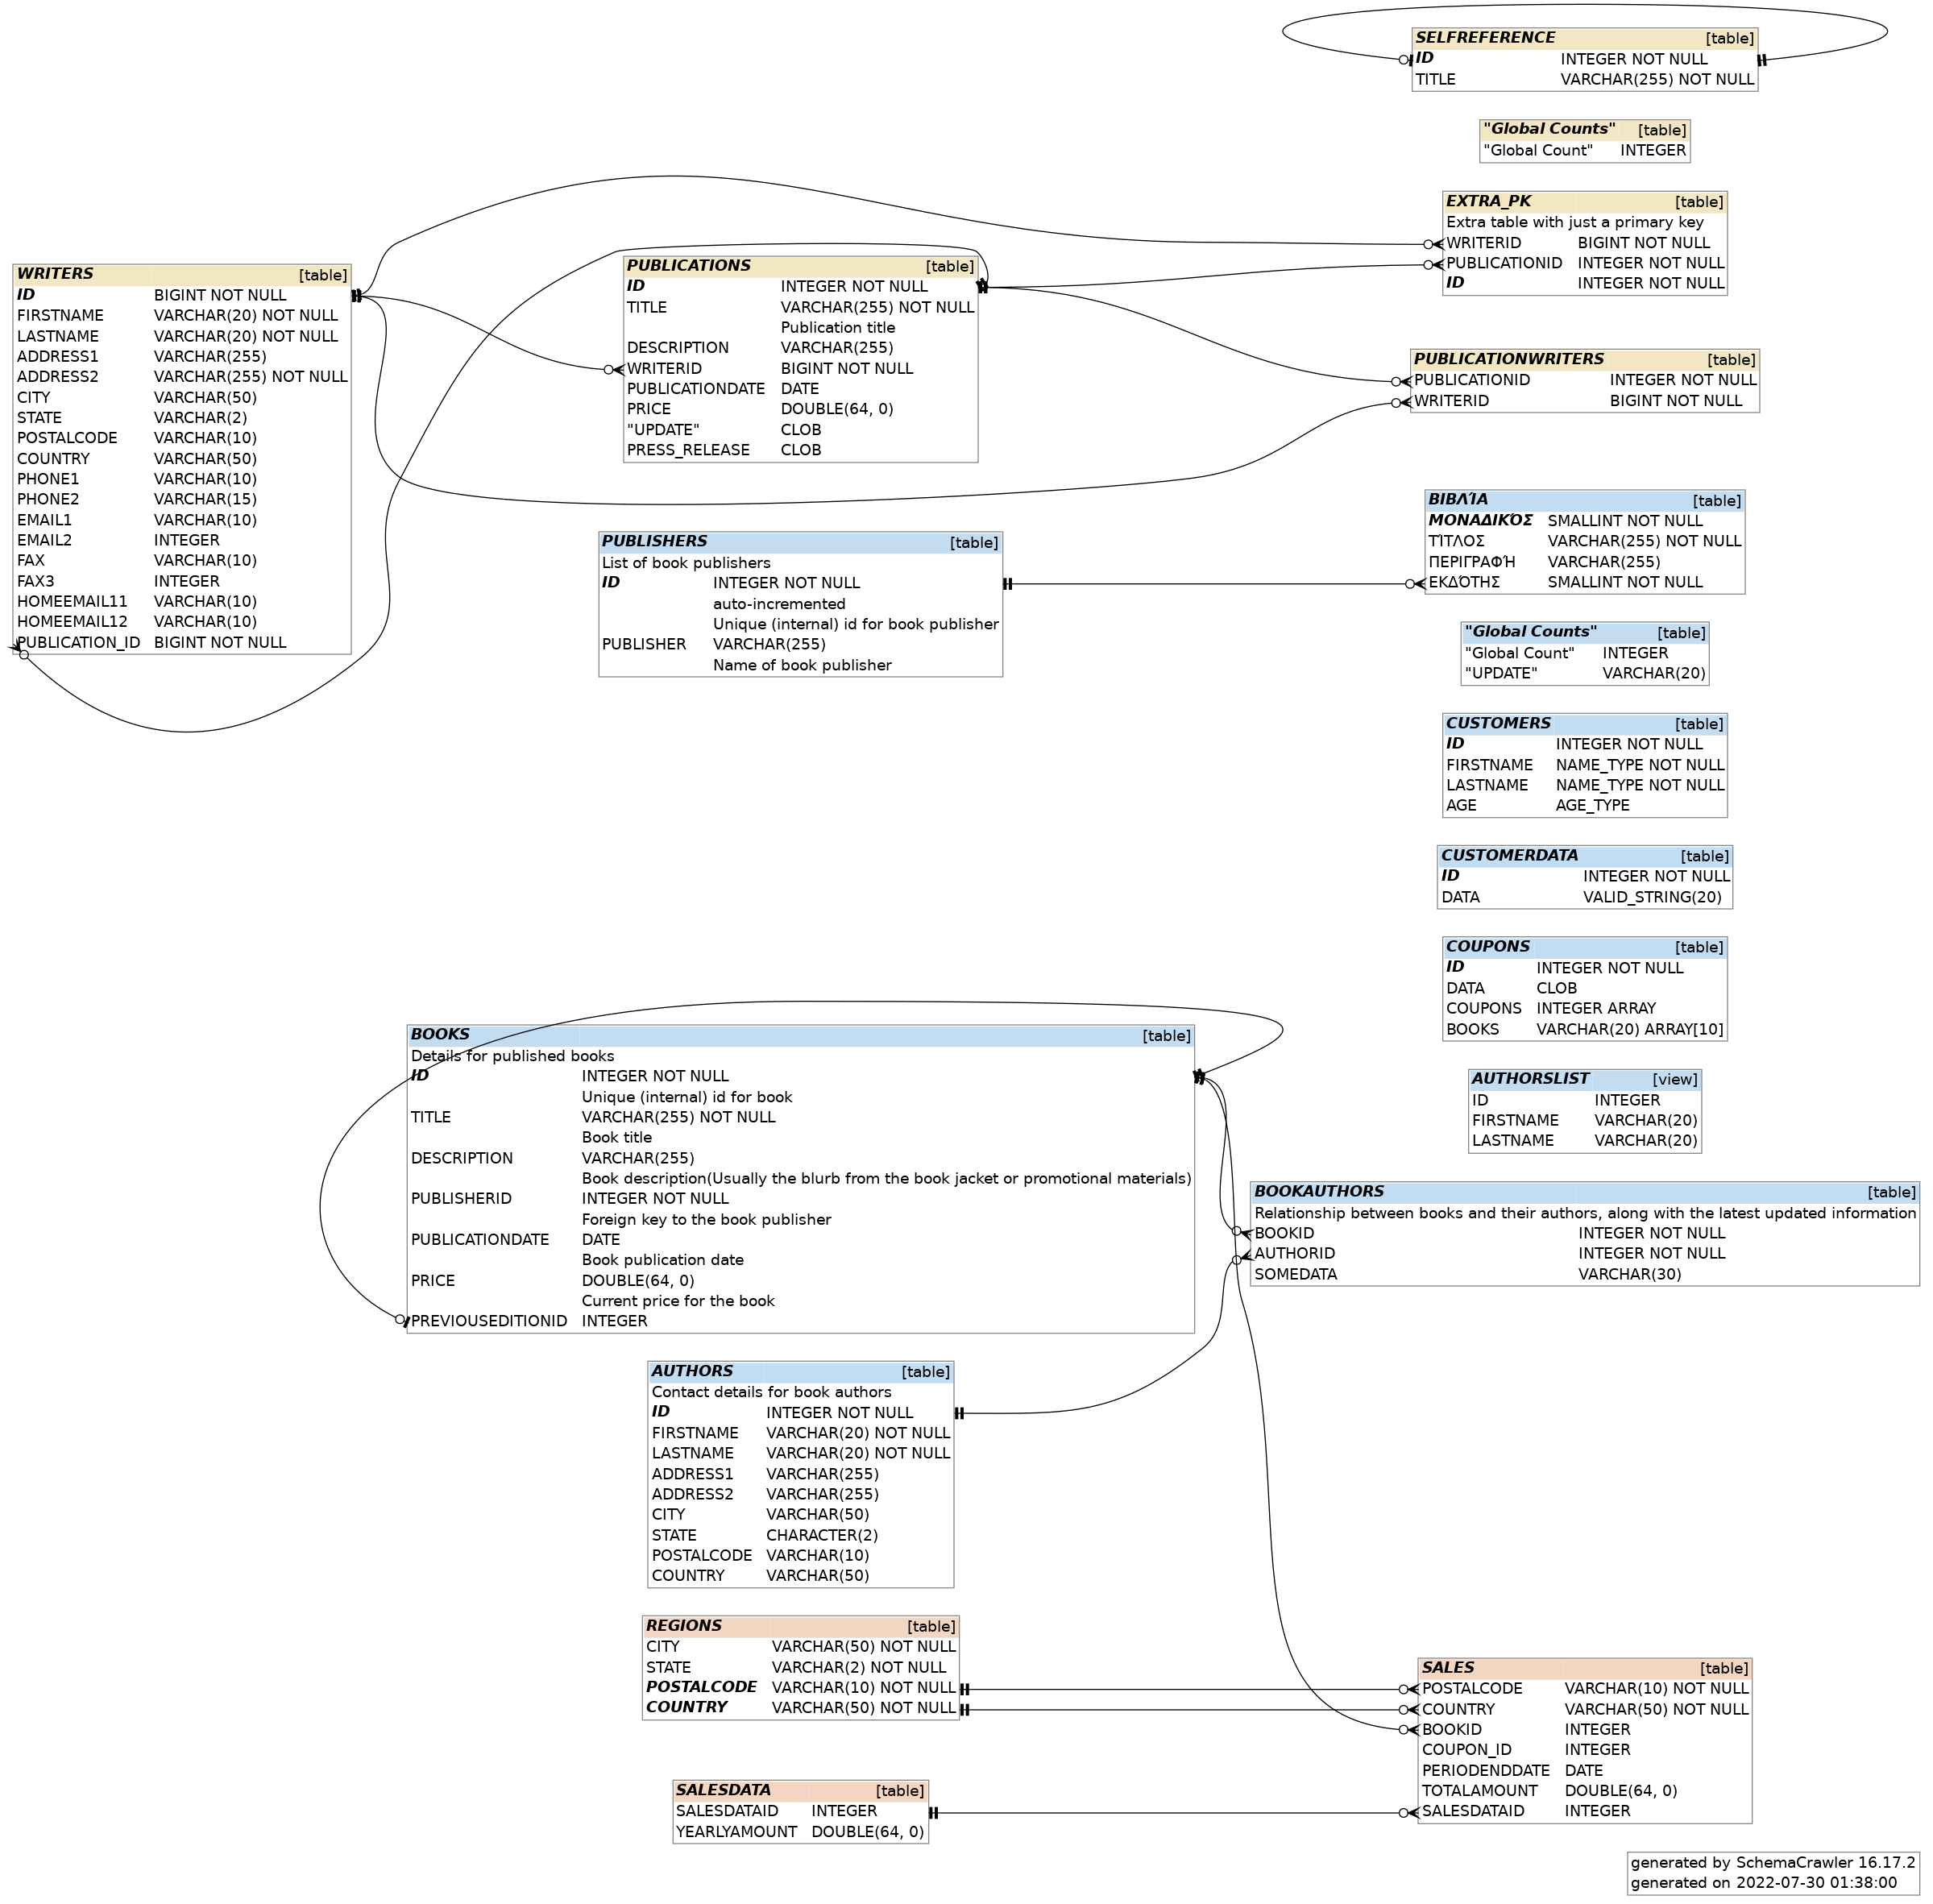 SchemaCrawler - Free database schema discovery and comprehension tool